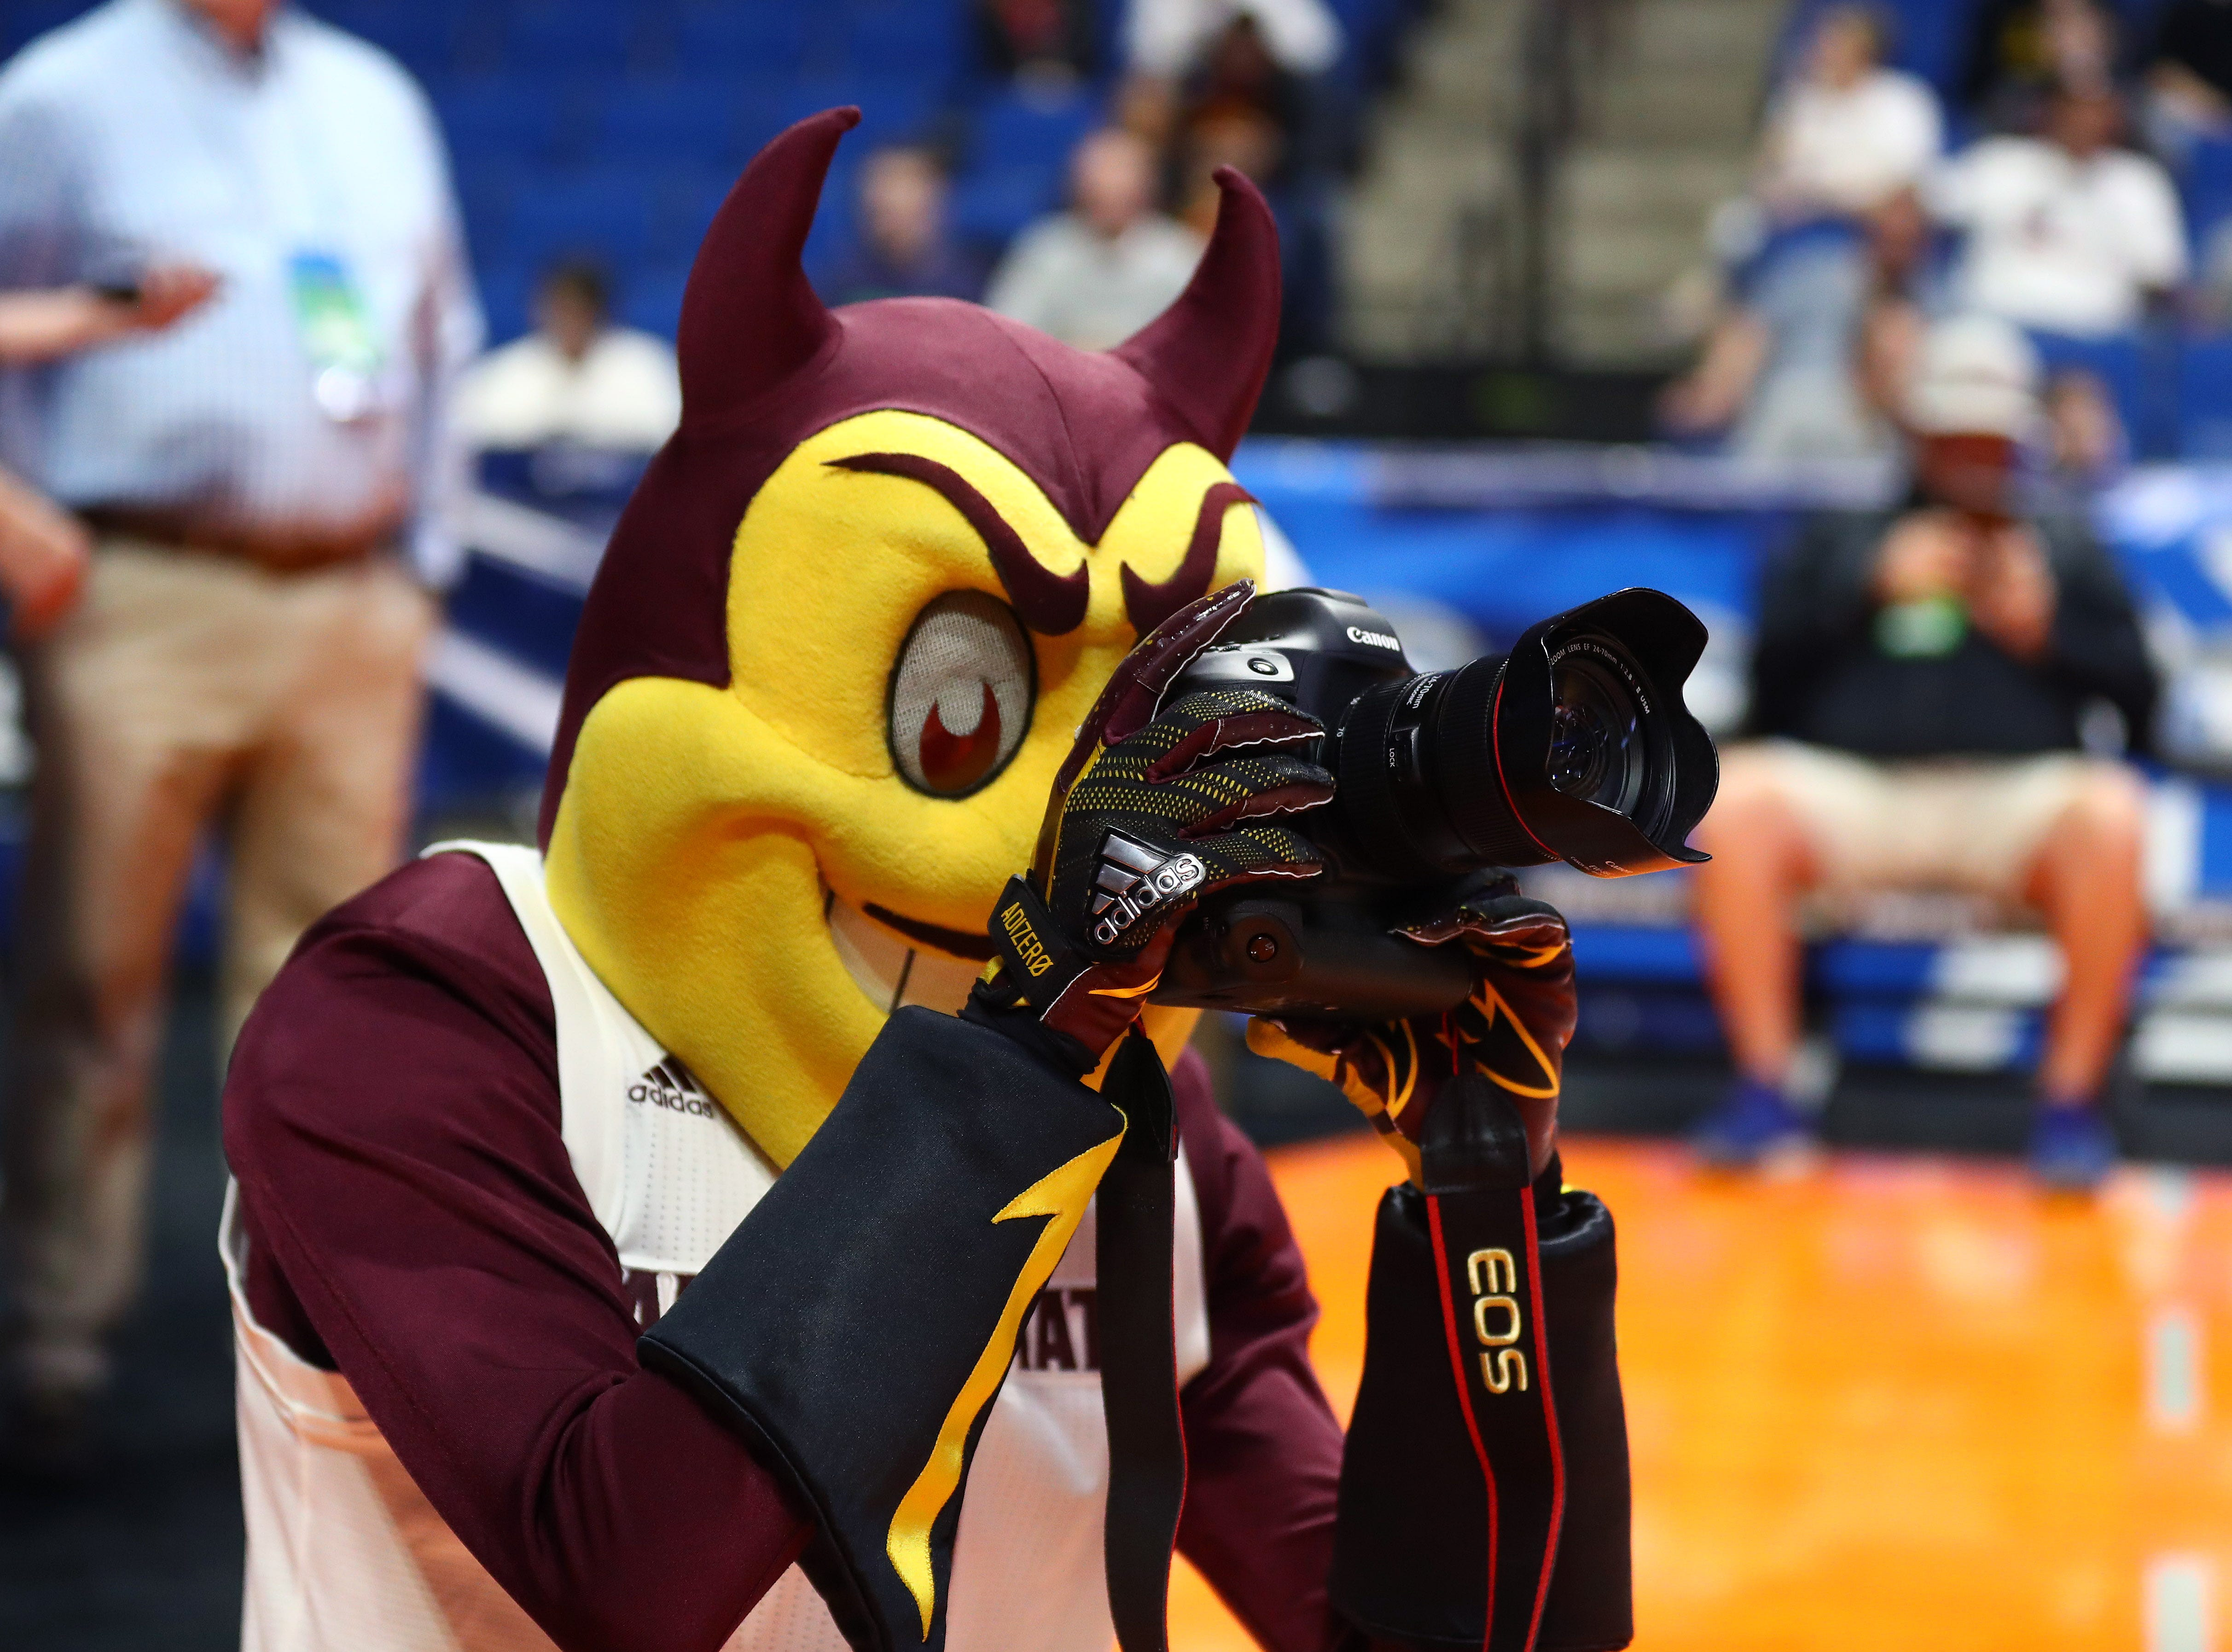 Mar 21, 2019; Tulsa, OK, USA; Arizona State Sun Devils mascot Sparky uses a Canon camera during practice before the first round of the 2019 NCAA Tournament at BOK Center. Mandatory Credit: Mark J. Rebilas-USA TODAY Sports